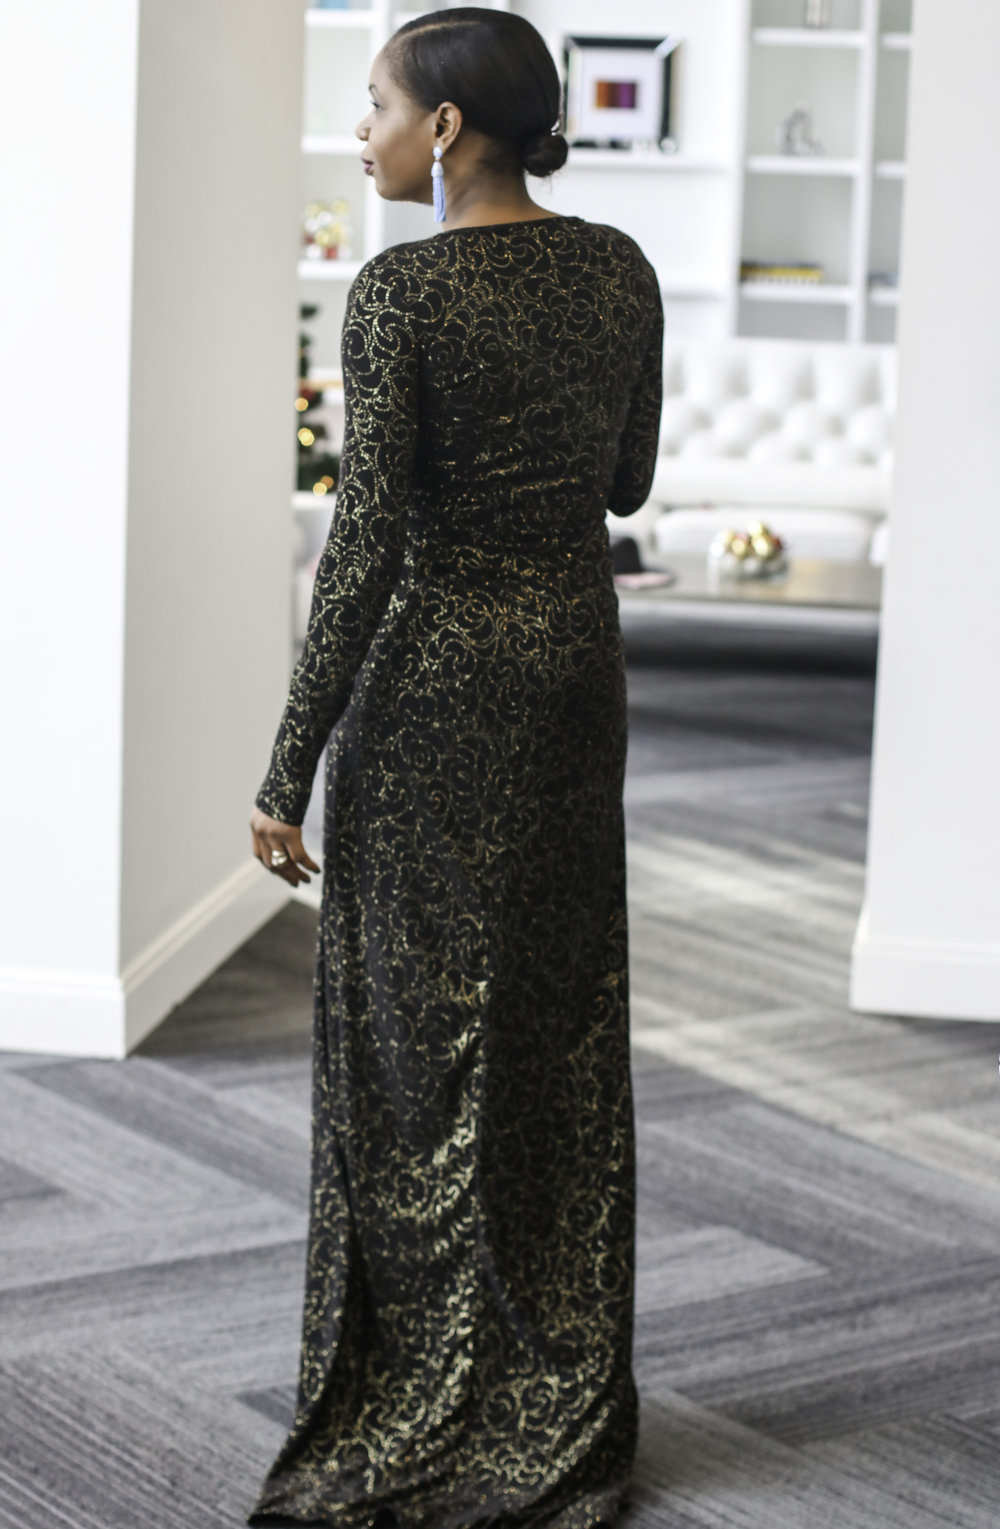 BACK VIEW OF BLACK AND GOLD WRAP DRESS.jpg